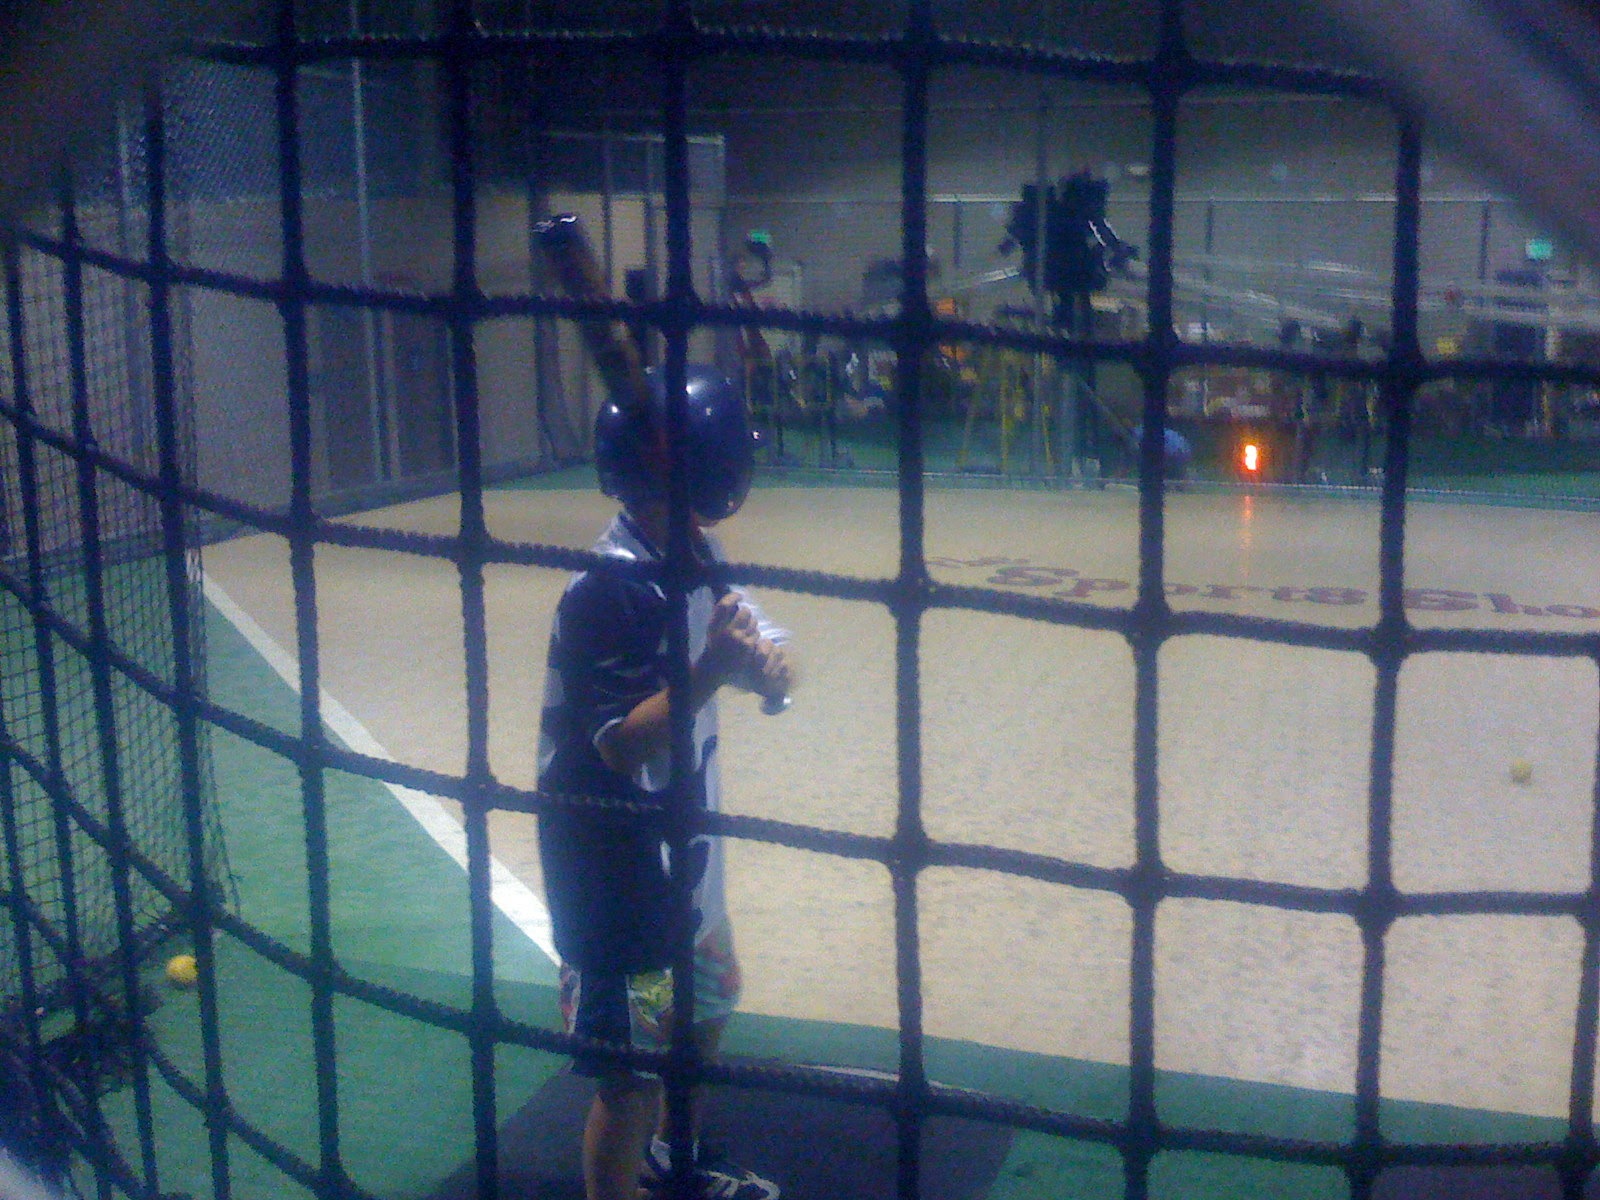 At the Batting Cage